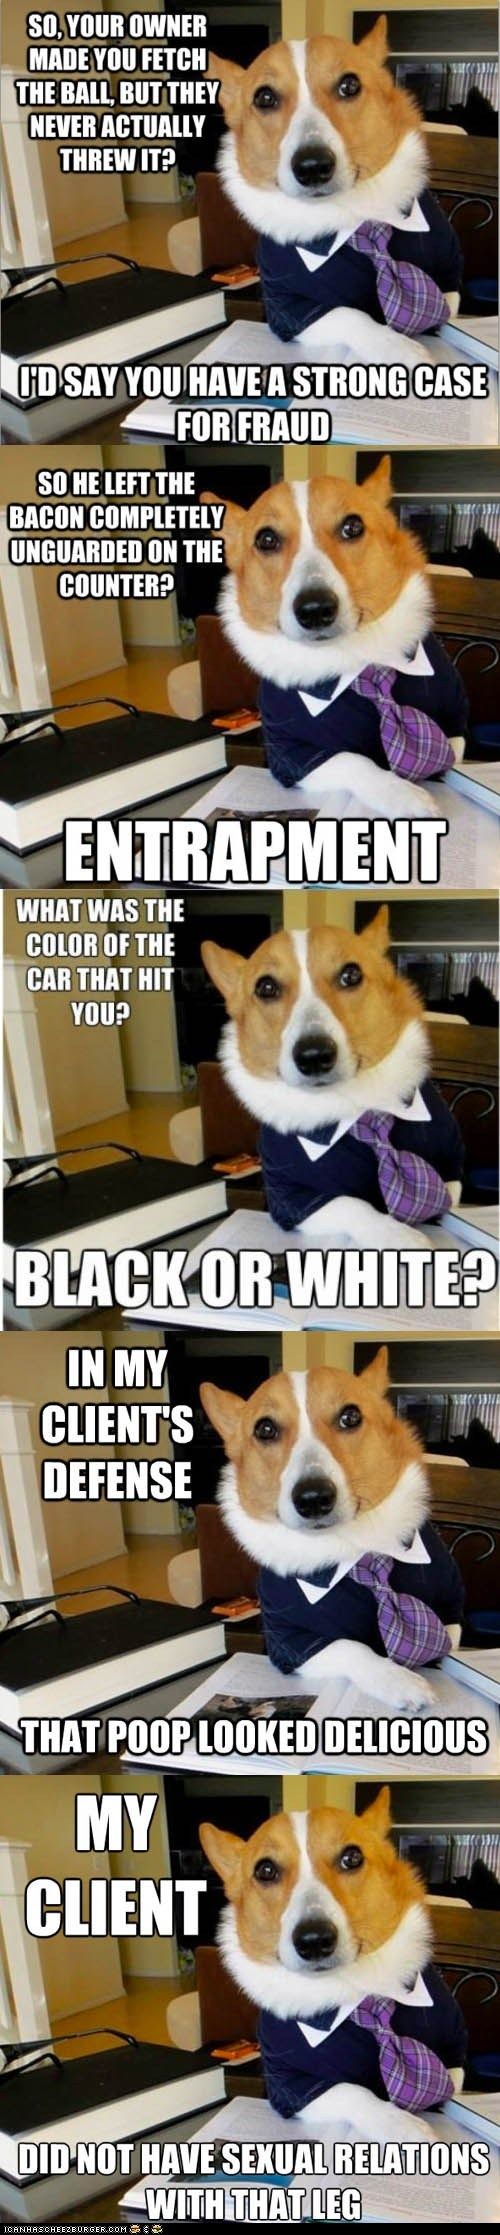 best of the week dogs Lawyer Dog Lawyers Memes multipanel puns - 6128234496